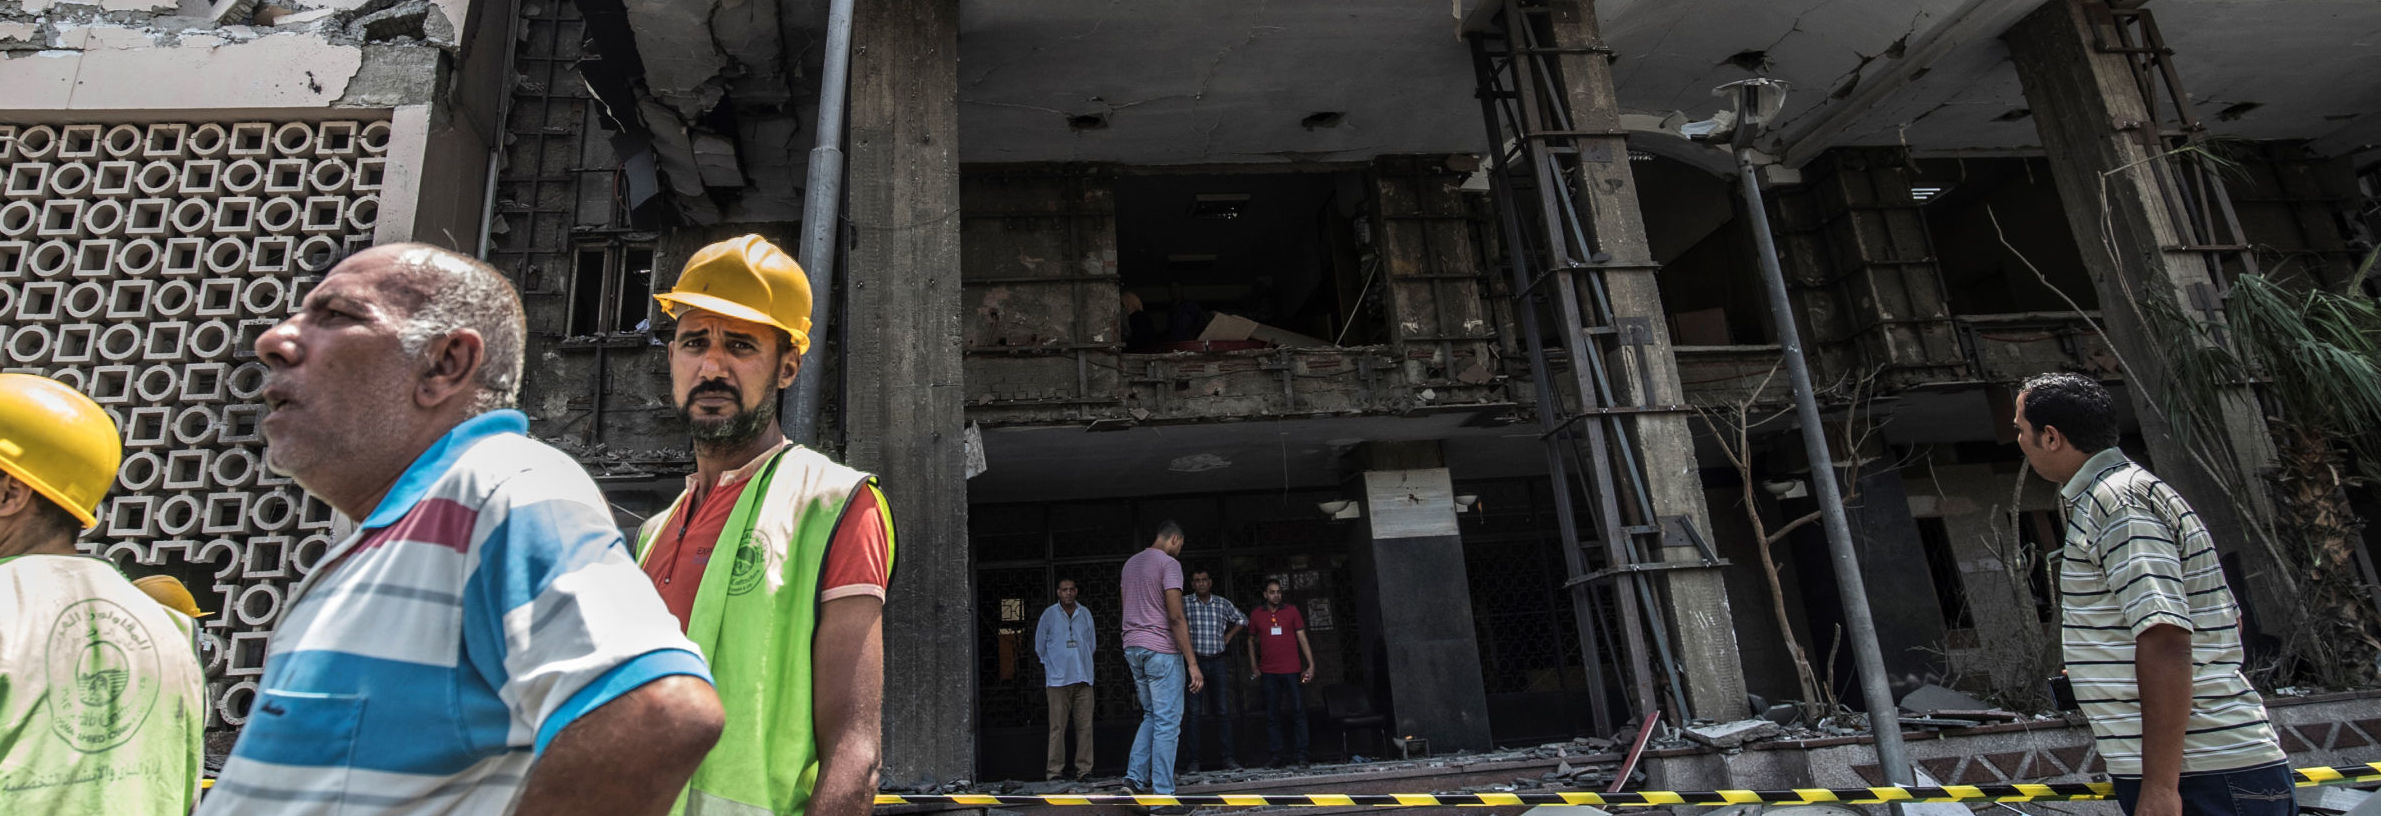 Egyptians walk outside the National Cancer Institute in the capital Cairo on August 5, 2019, where an accident took place just before midnight the previous day.